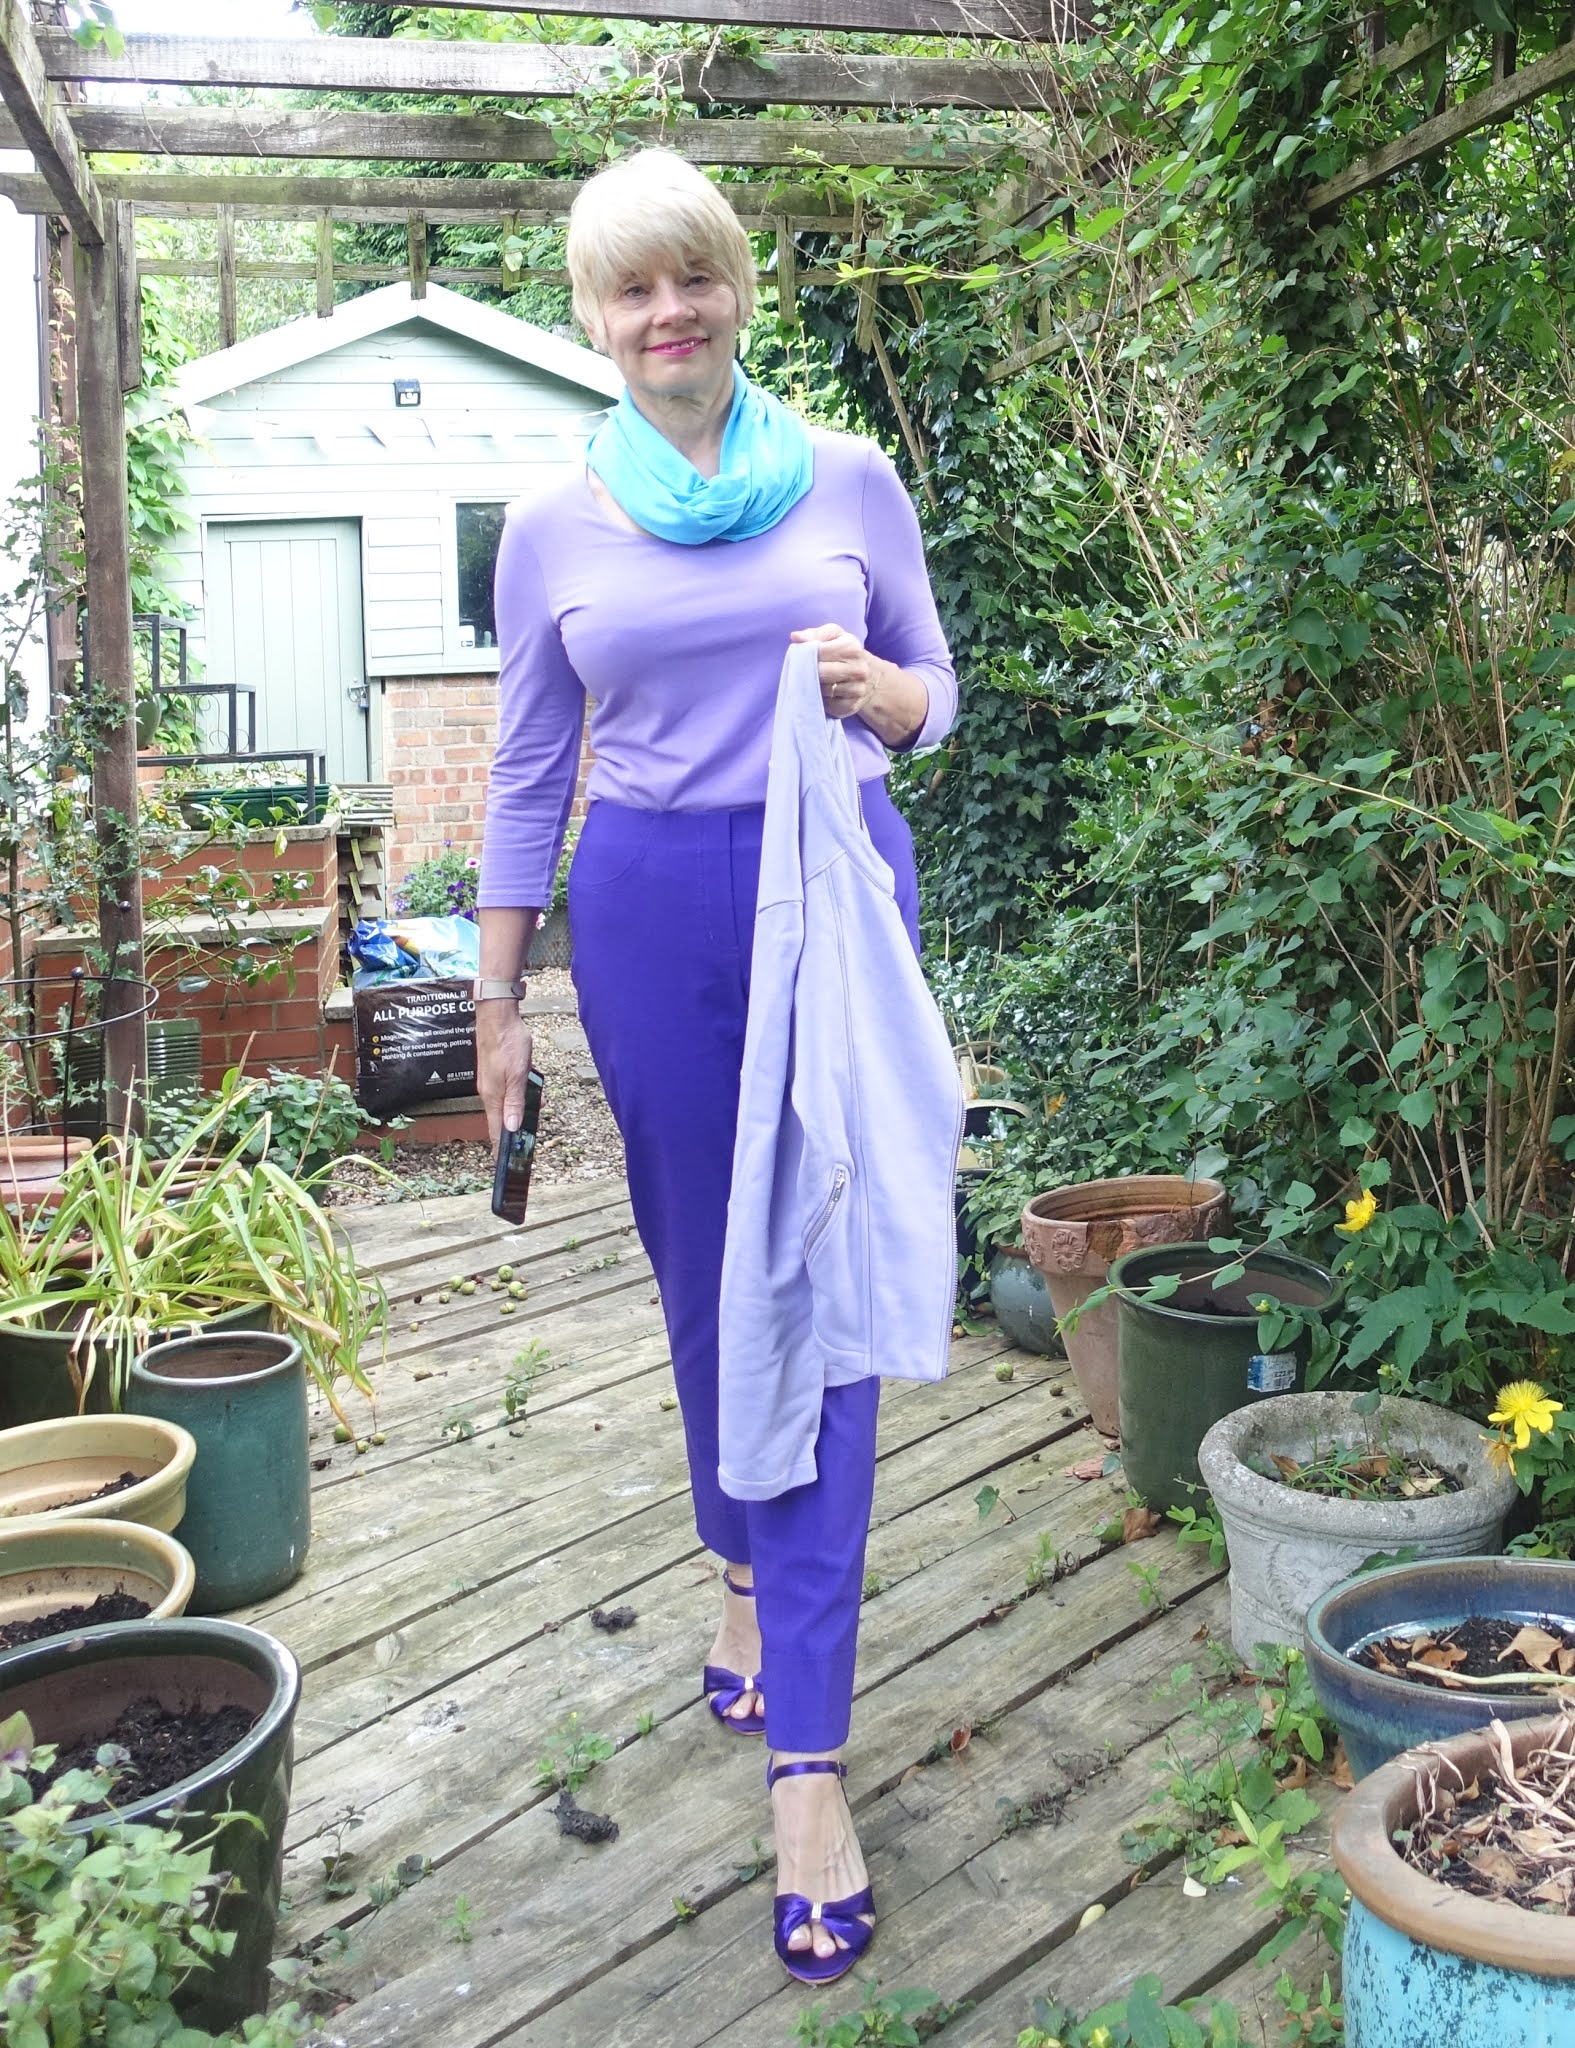 If a favourite colour isn't in your colour palette, make it work by wearing a more flattering colour next to the face. Is This Mutton blogger Gail Hanlon wears a bright blue Aquarius scarf by Kettlewell to brighten up a Wisteria top that might be too muted otherwise.